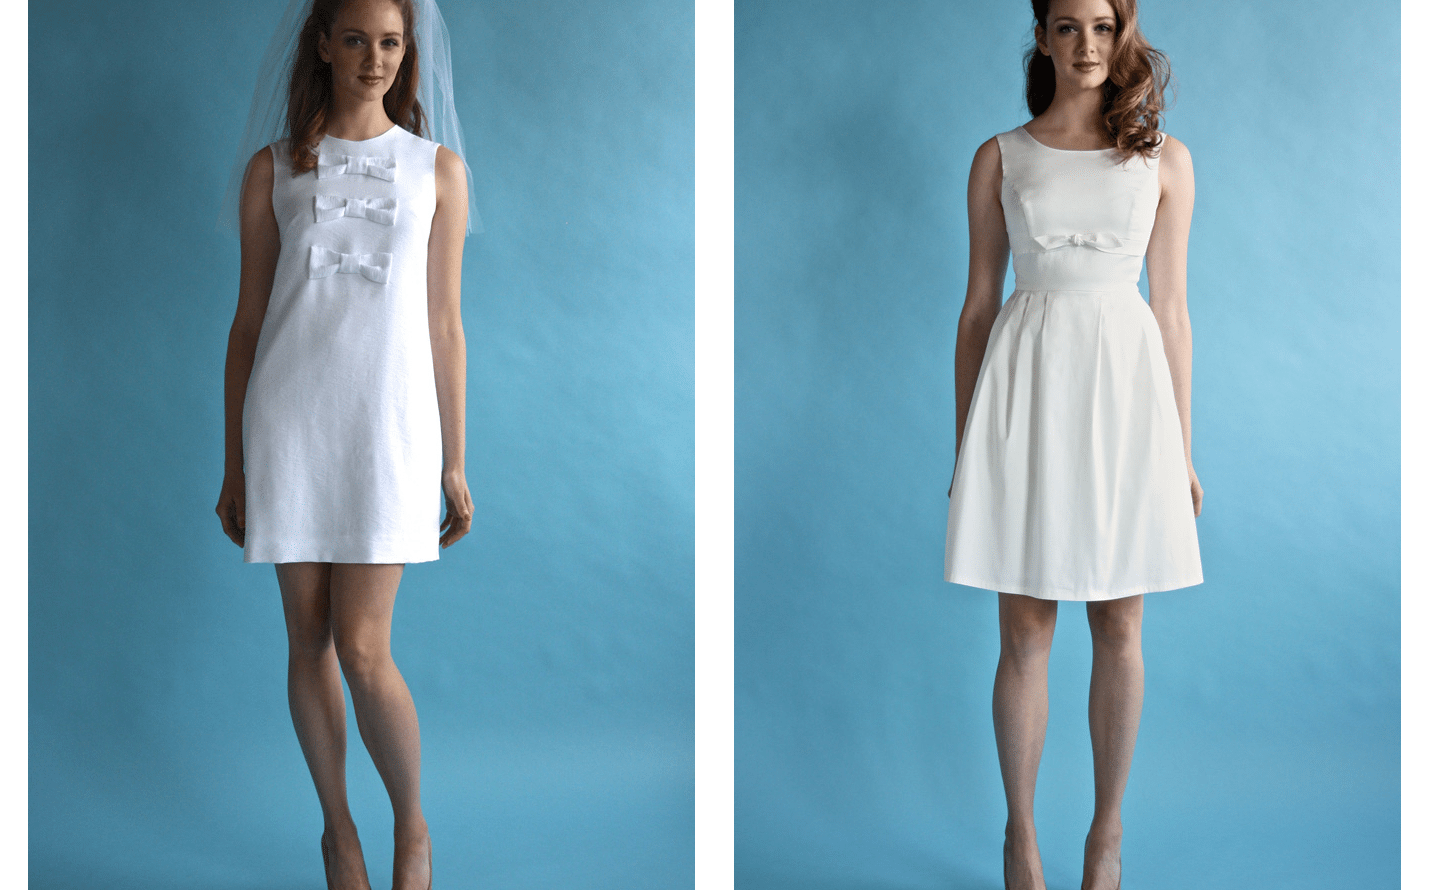 SHOP TALK: Visit Victoire for modern, vintage-inspired wedding dresses from Birds of North America